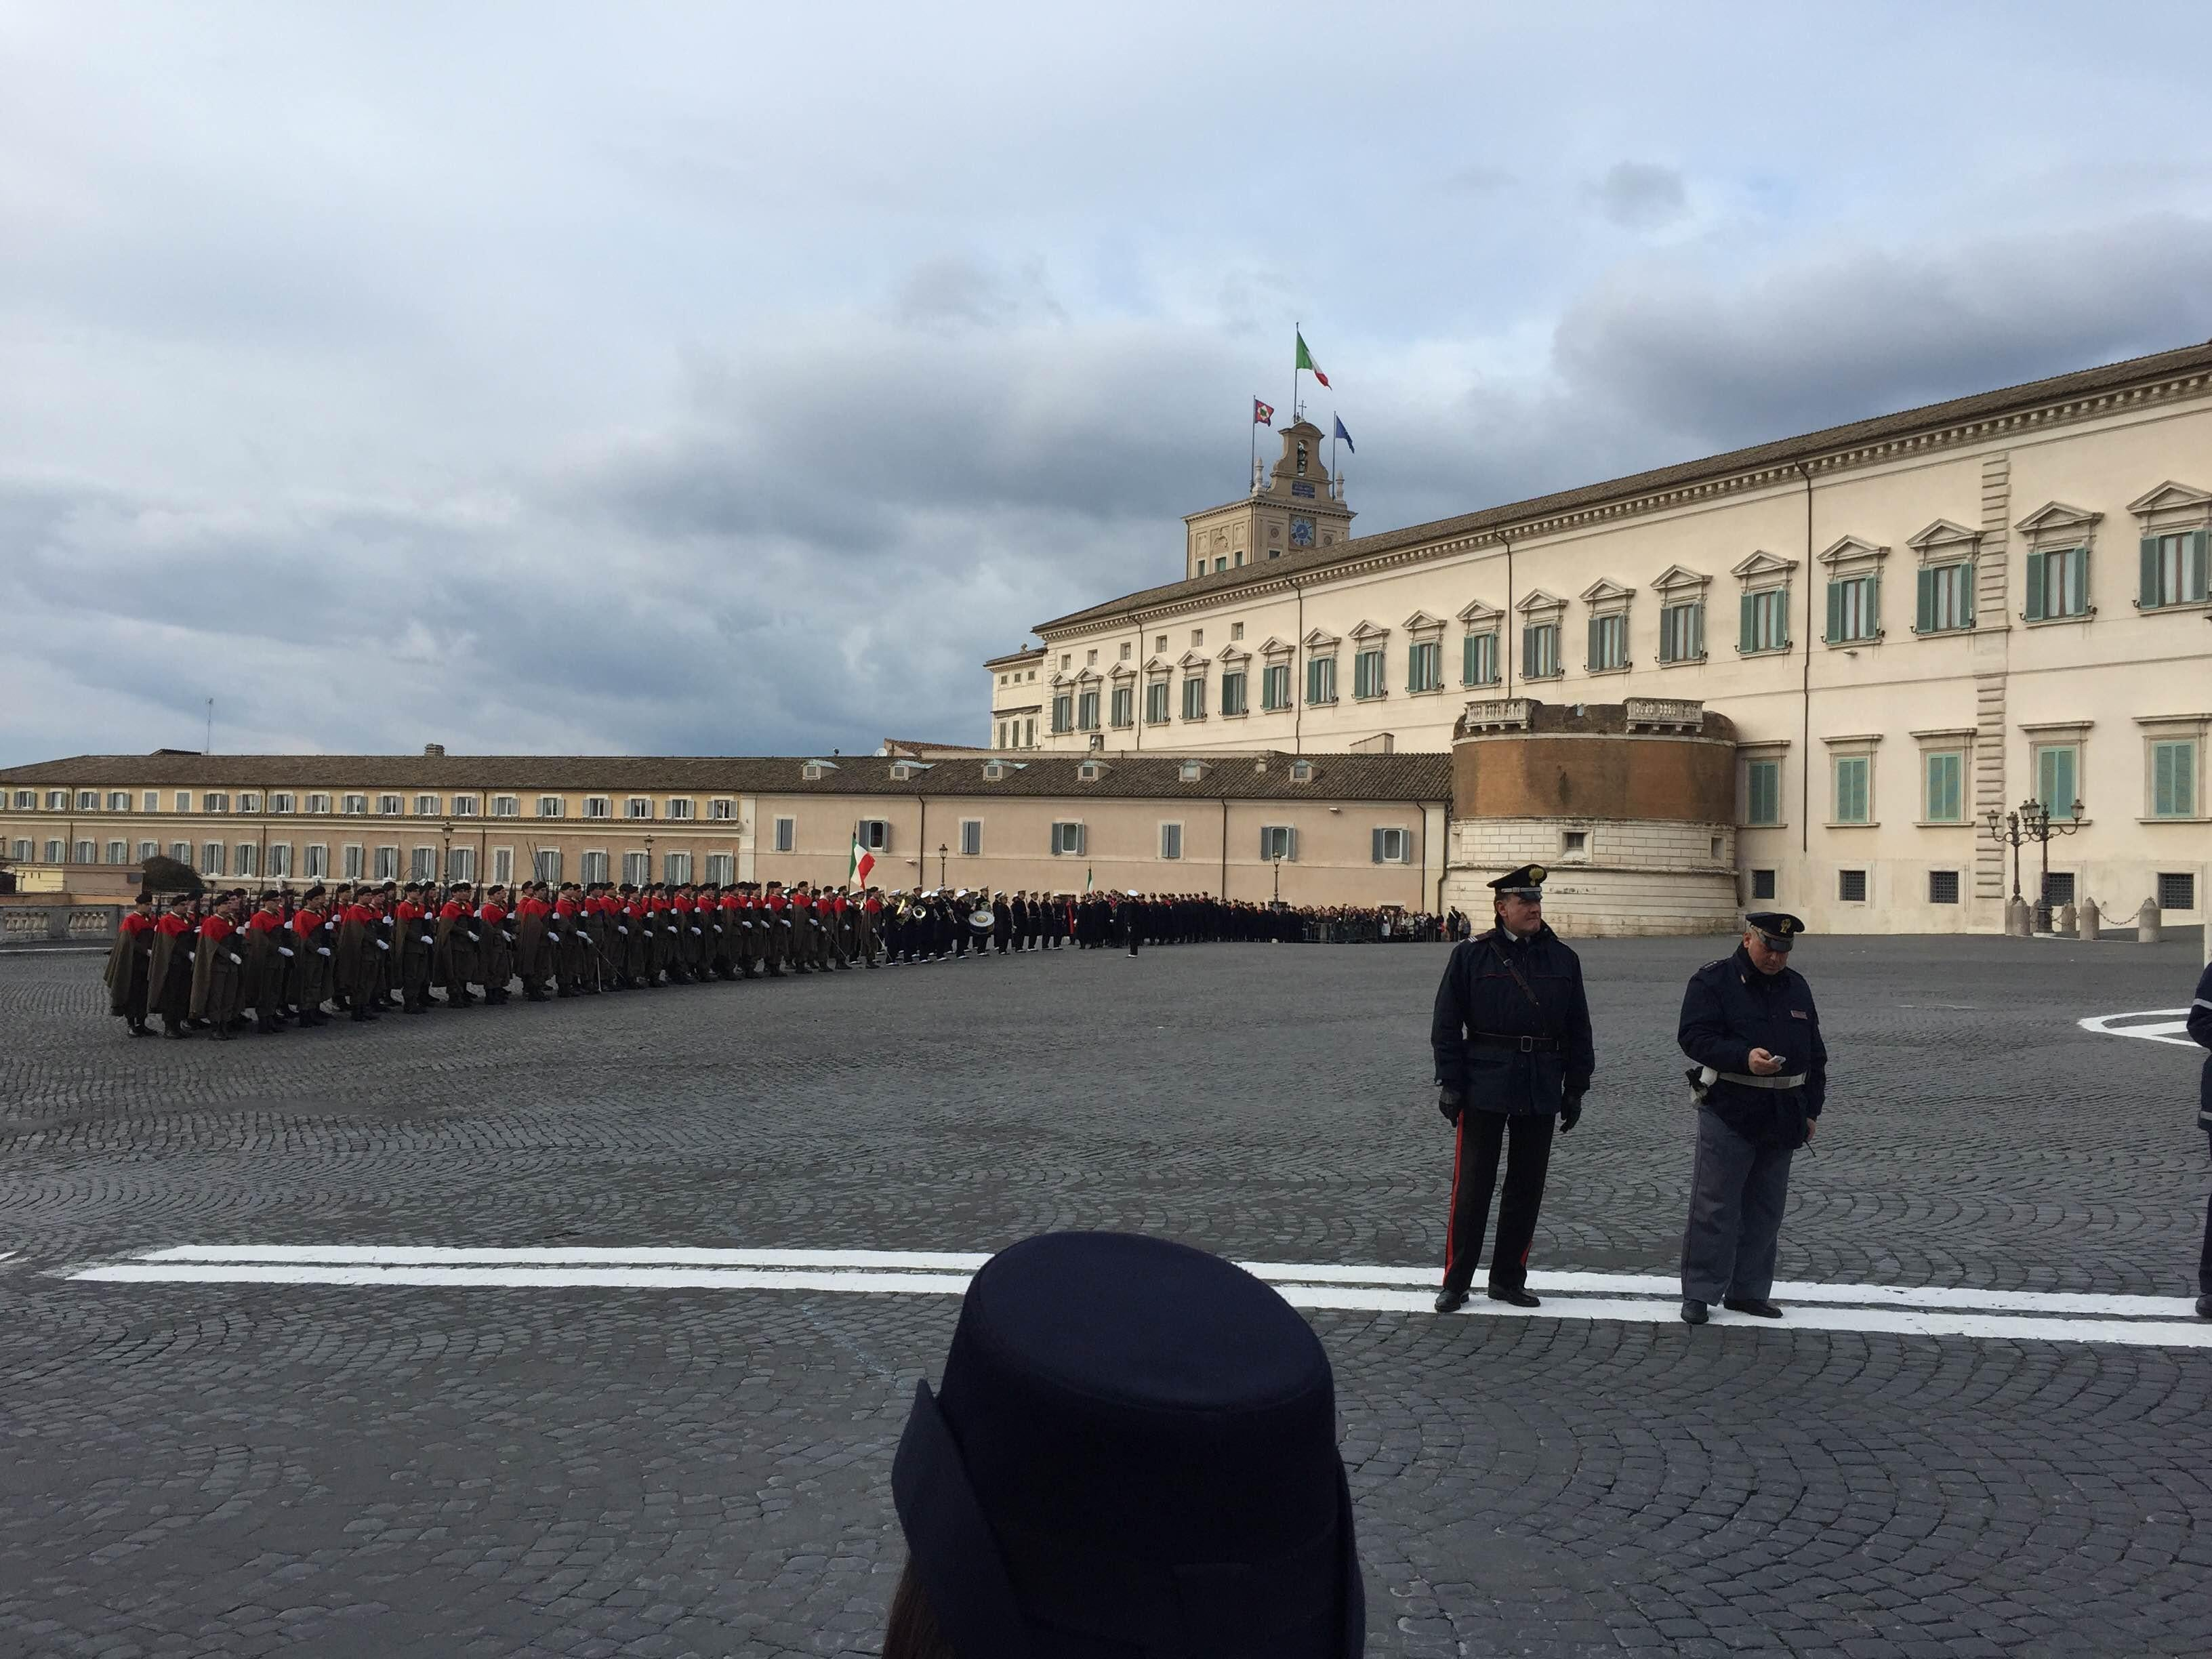 Mar en Plaza del Quirinale